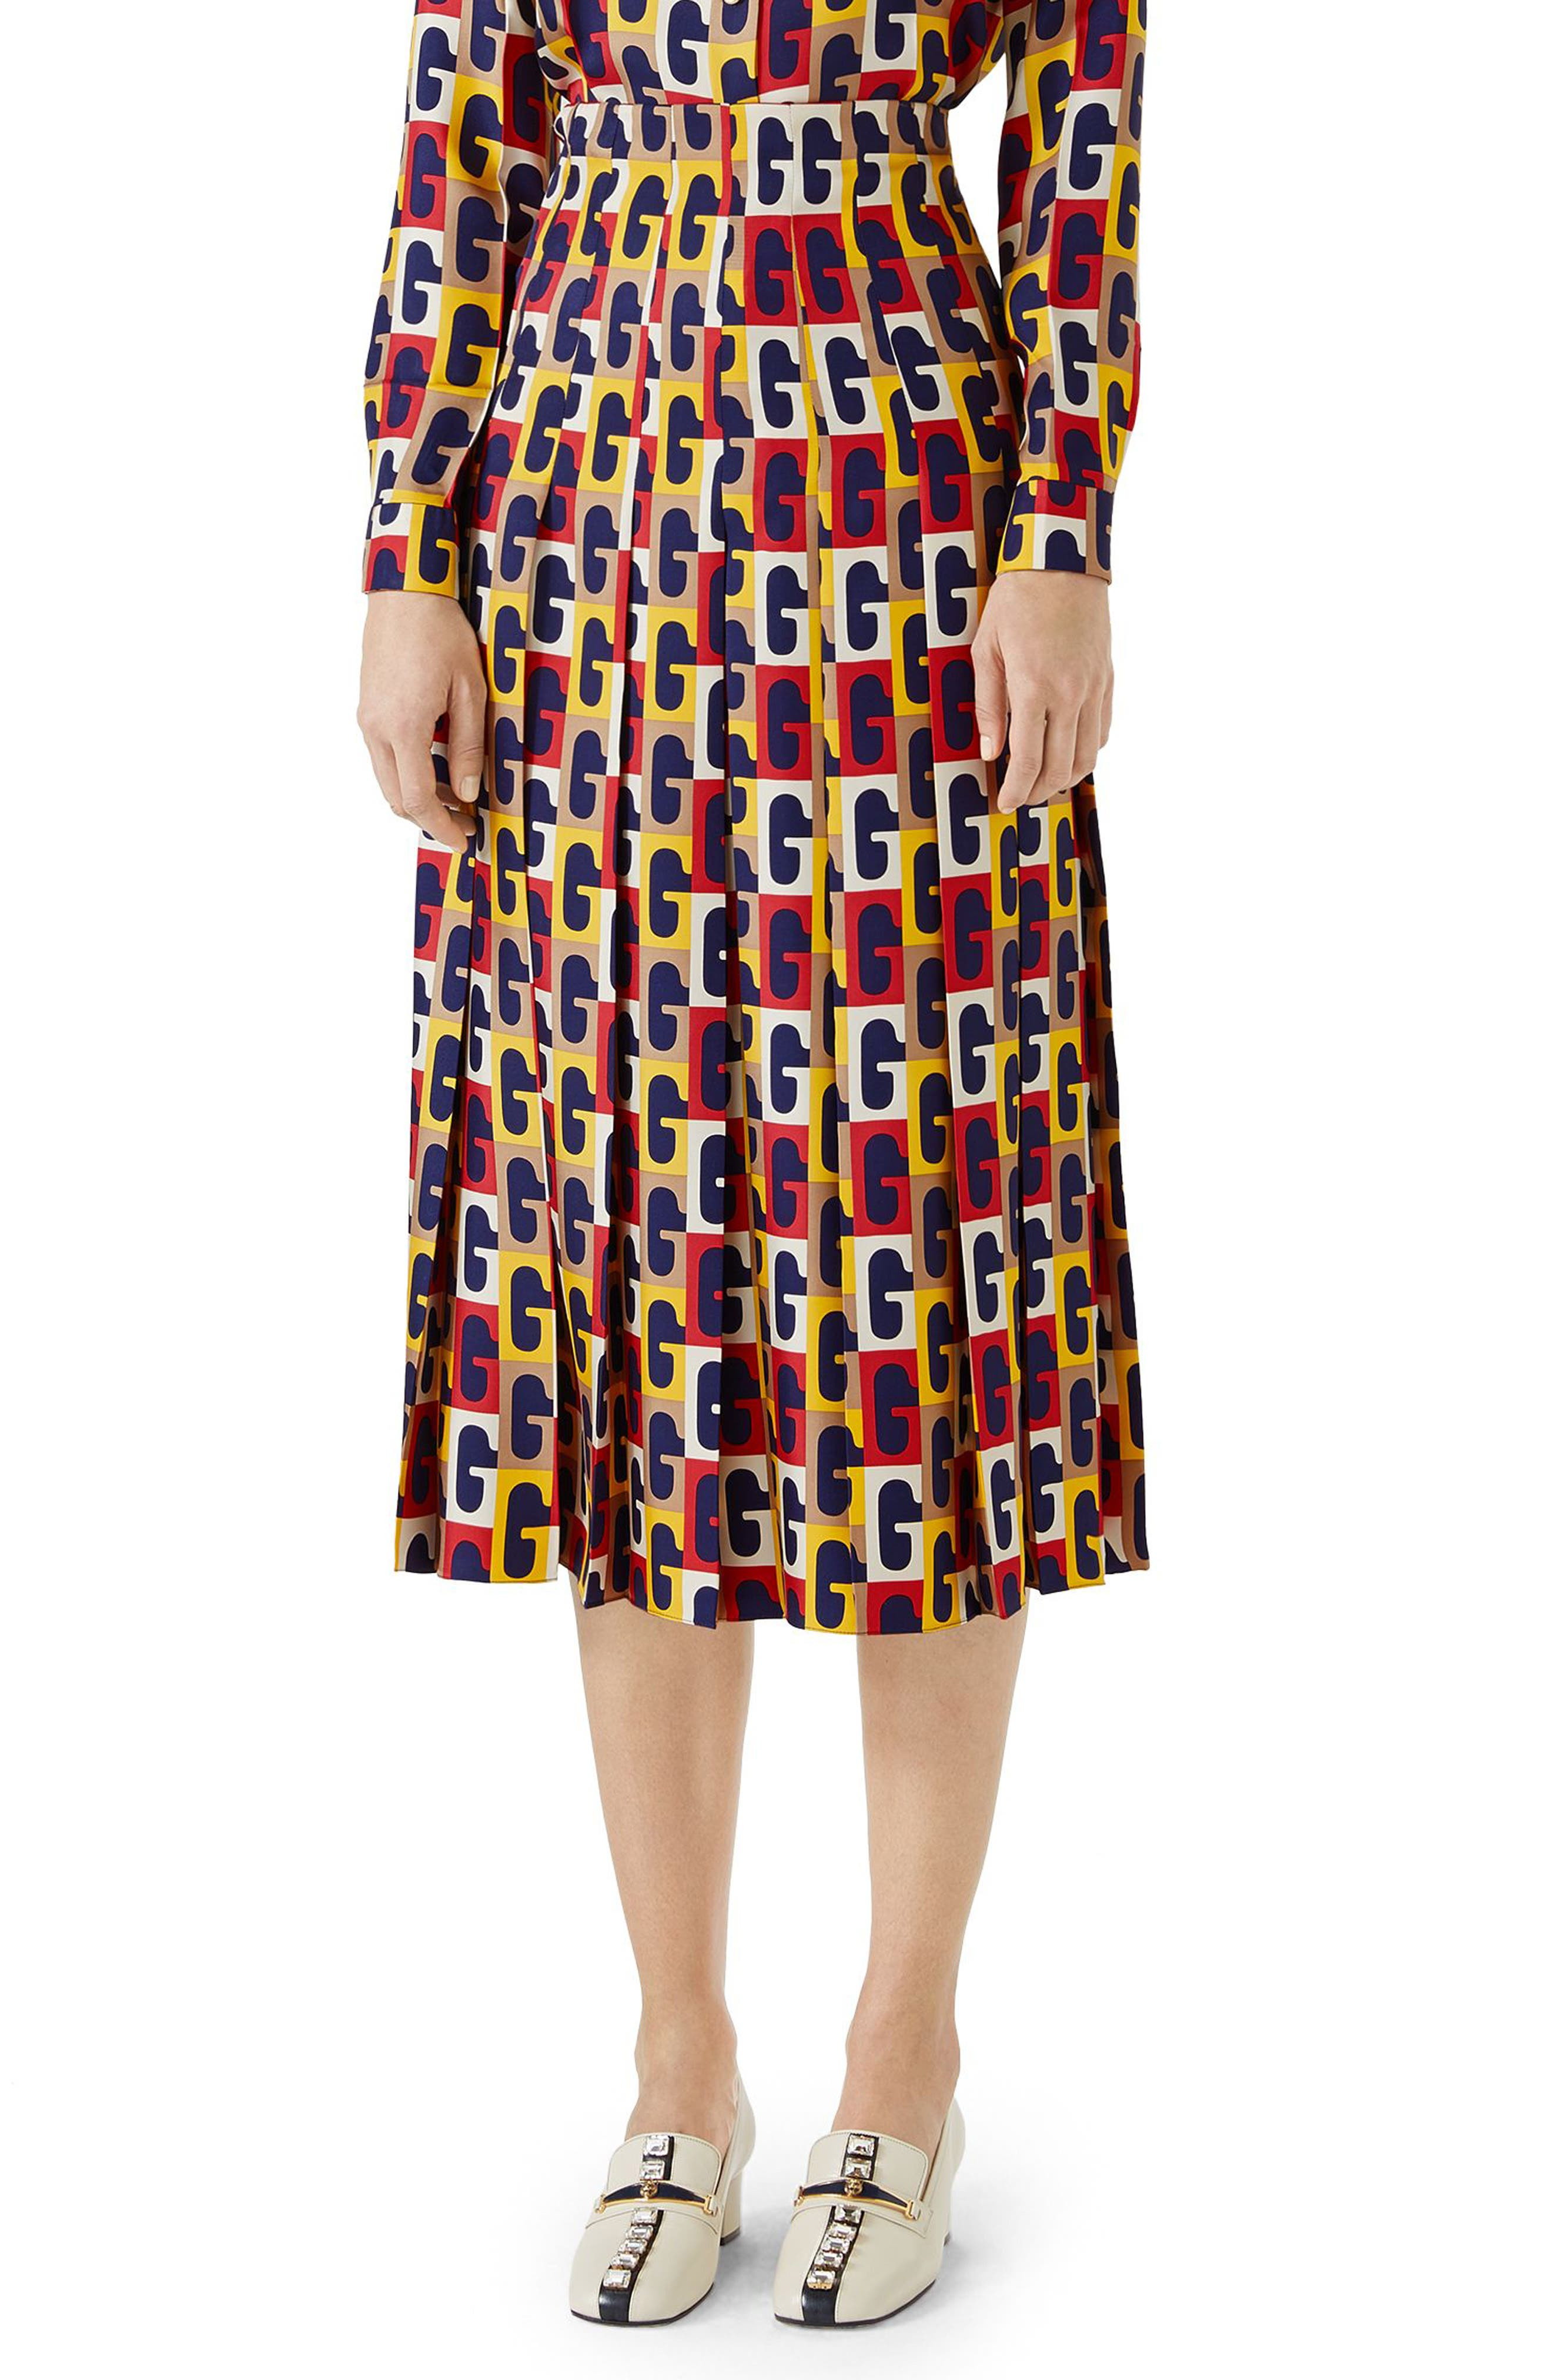 G-Sequence Print Silk Skirt,                         Main,                         color, Ivory/ Yellow/ Red Print